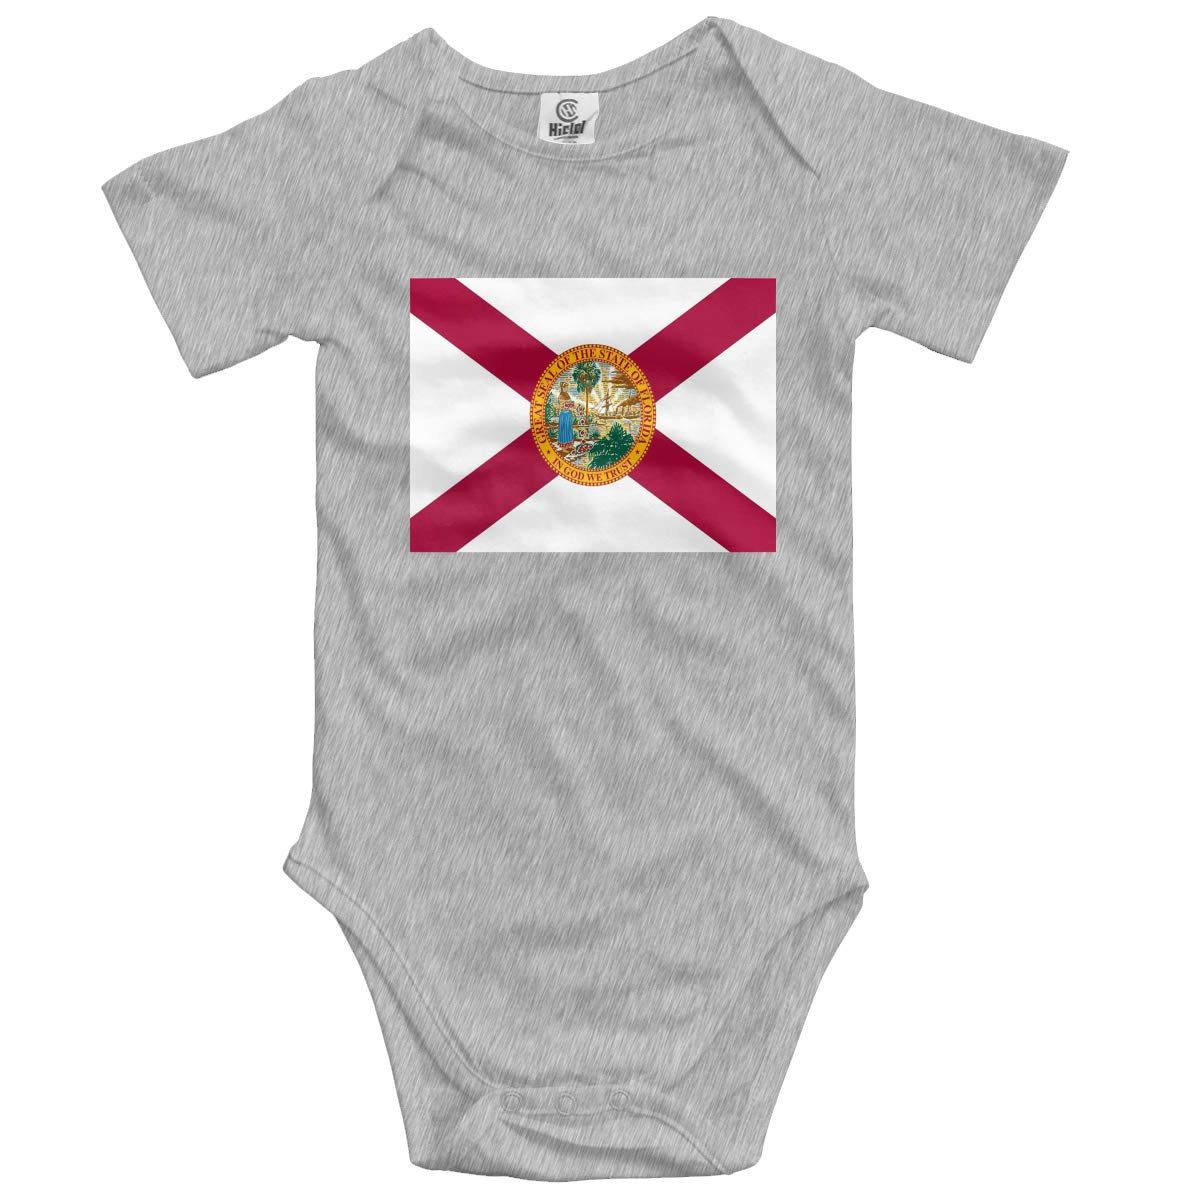 CUTEDWARF Baby Short-Sleeve Onesies Florida Flag Bodysuit Baby Outfits